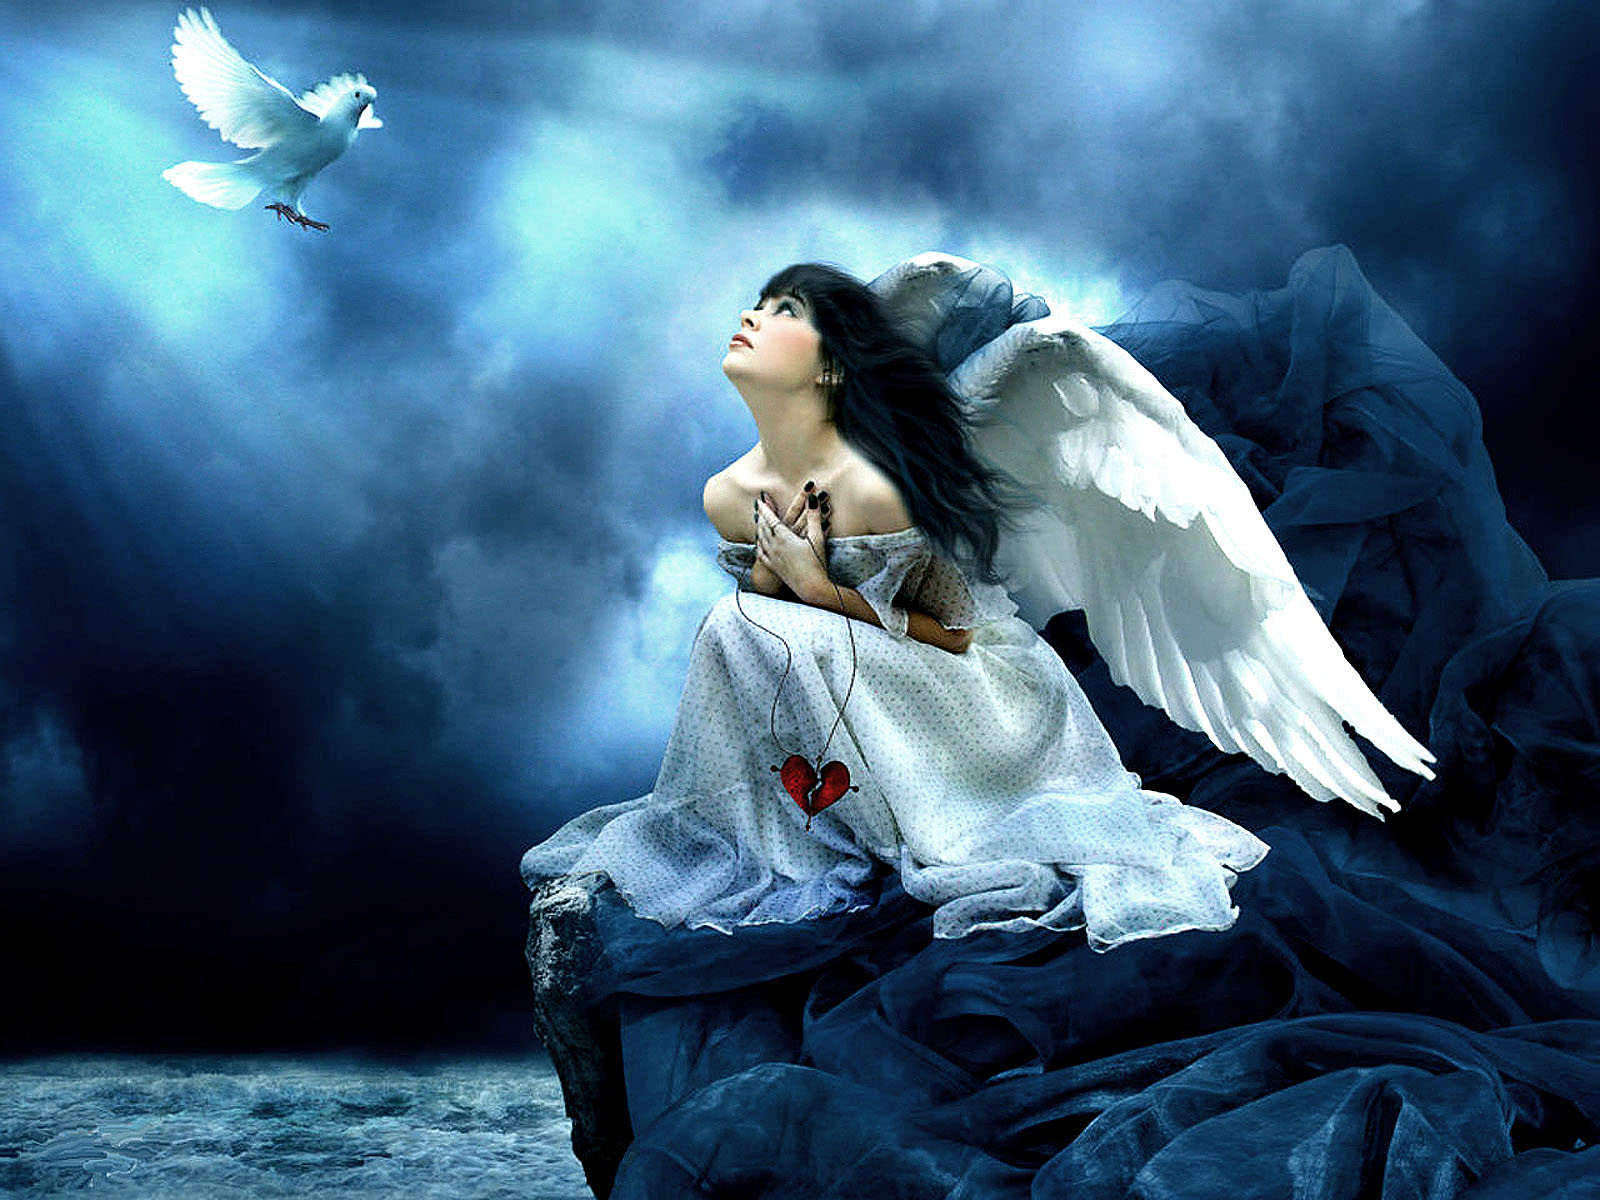 Best Wallpaper Collection: Best Angel Wallpapers